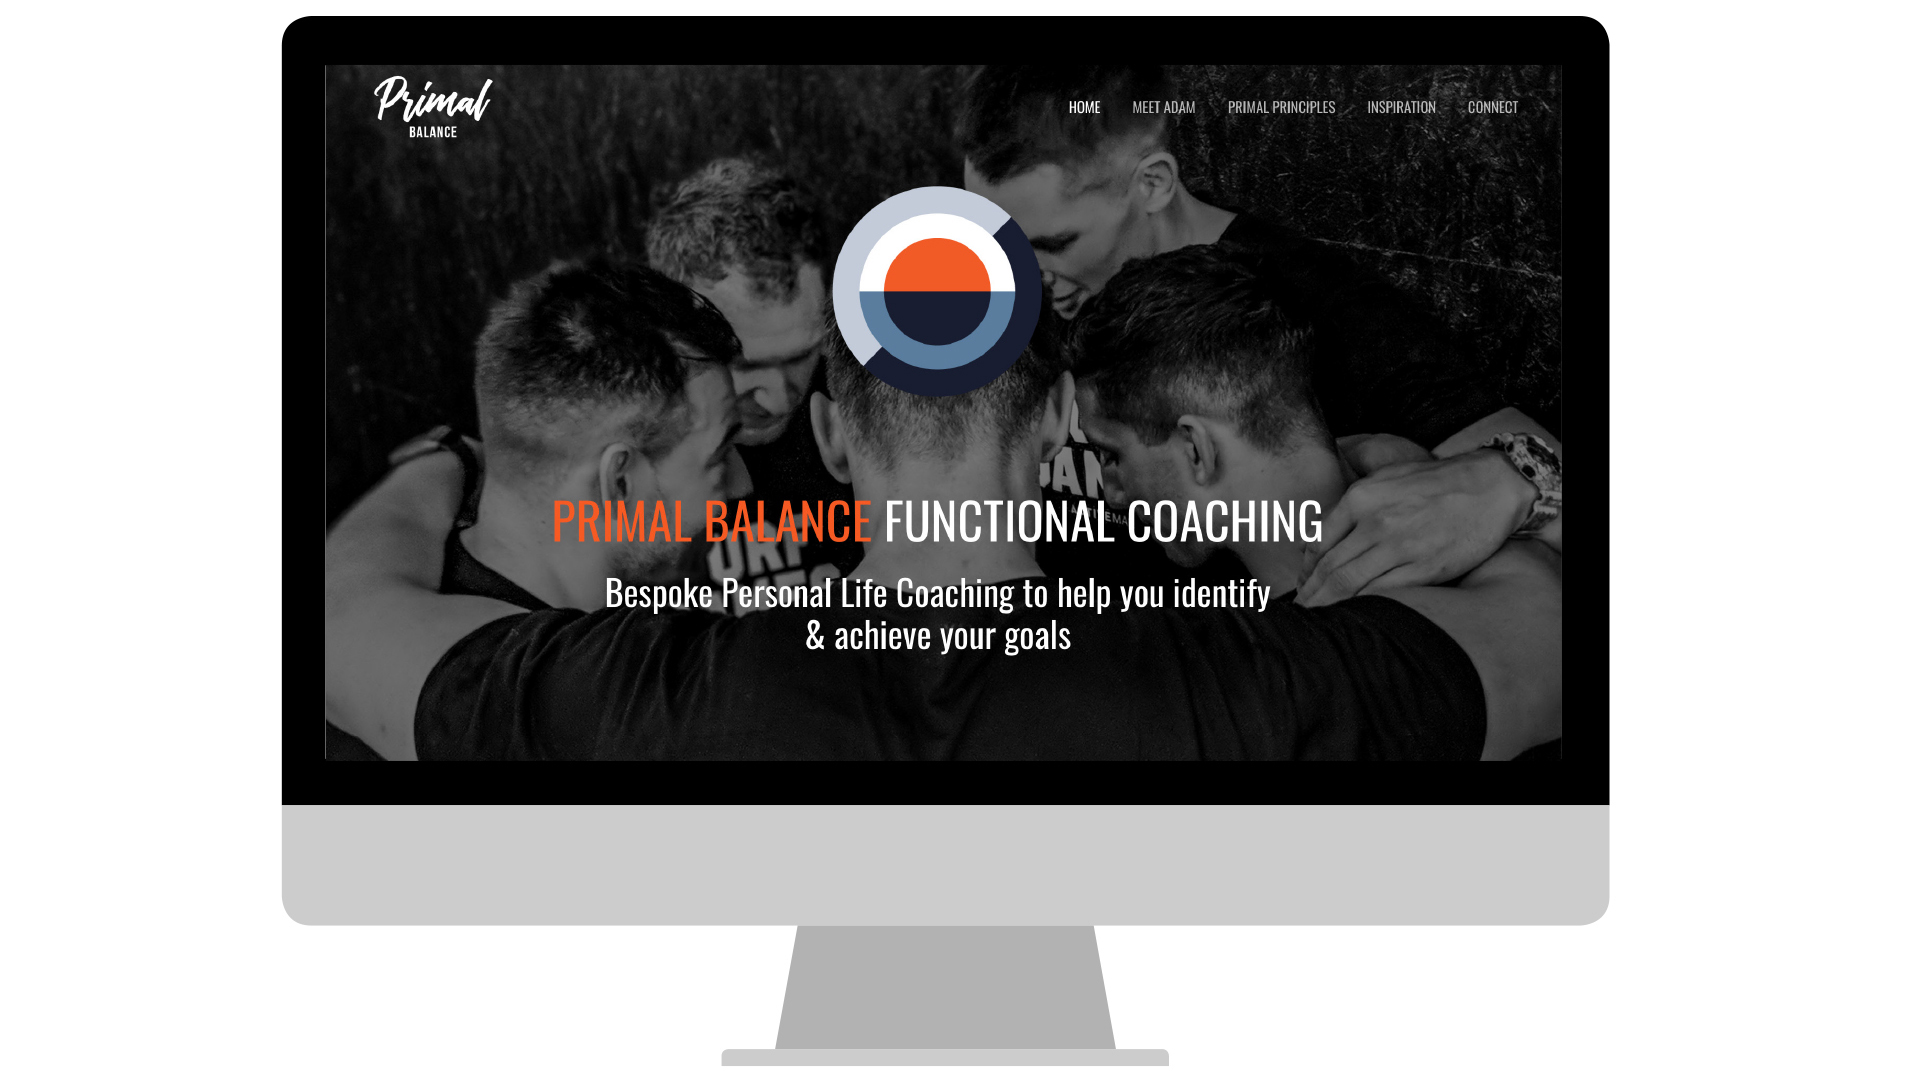 Primal Balance Website designed by Cousin Branding